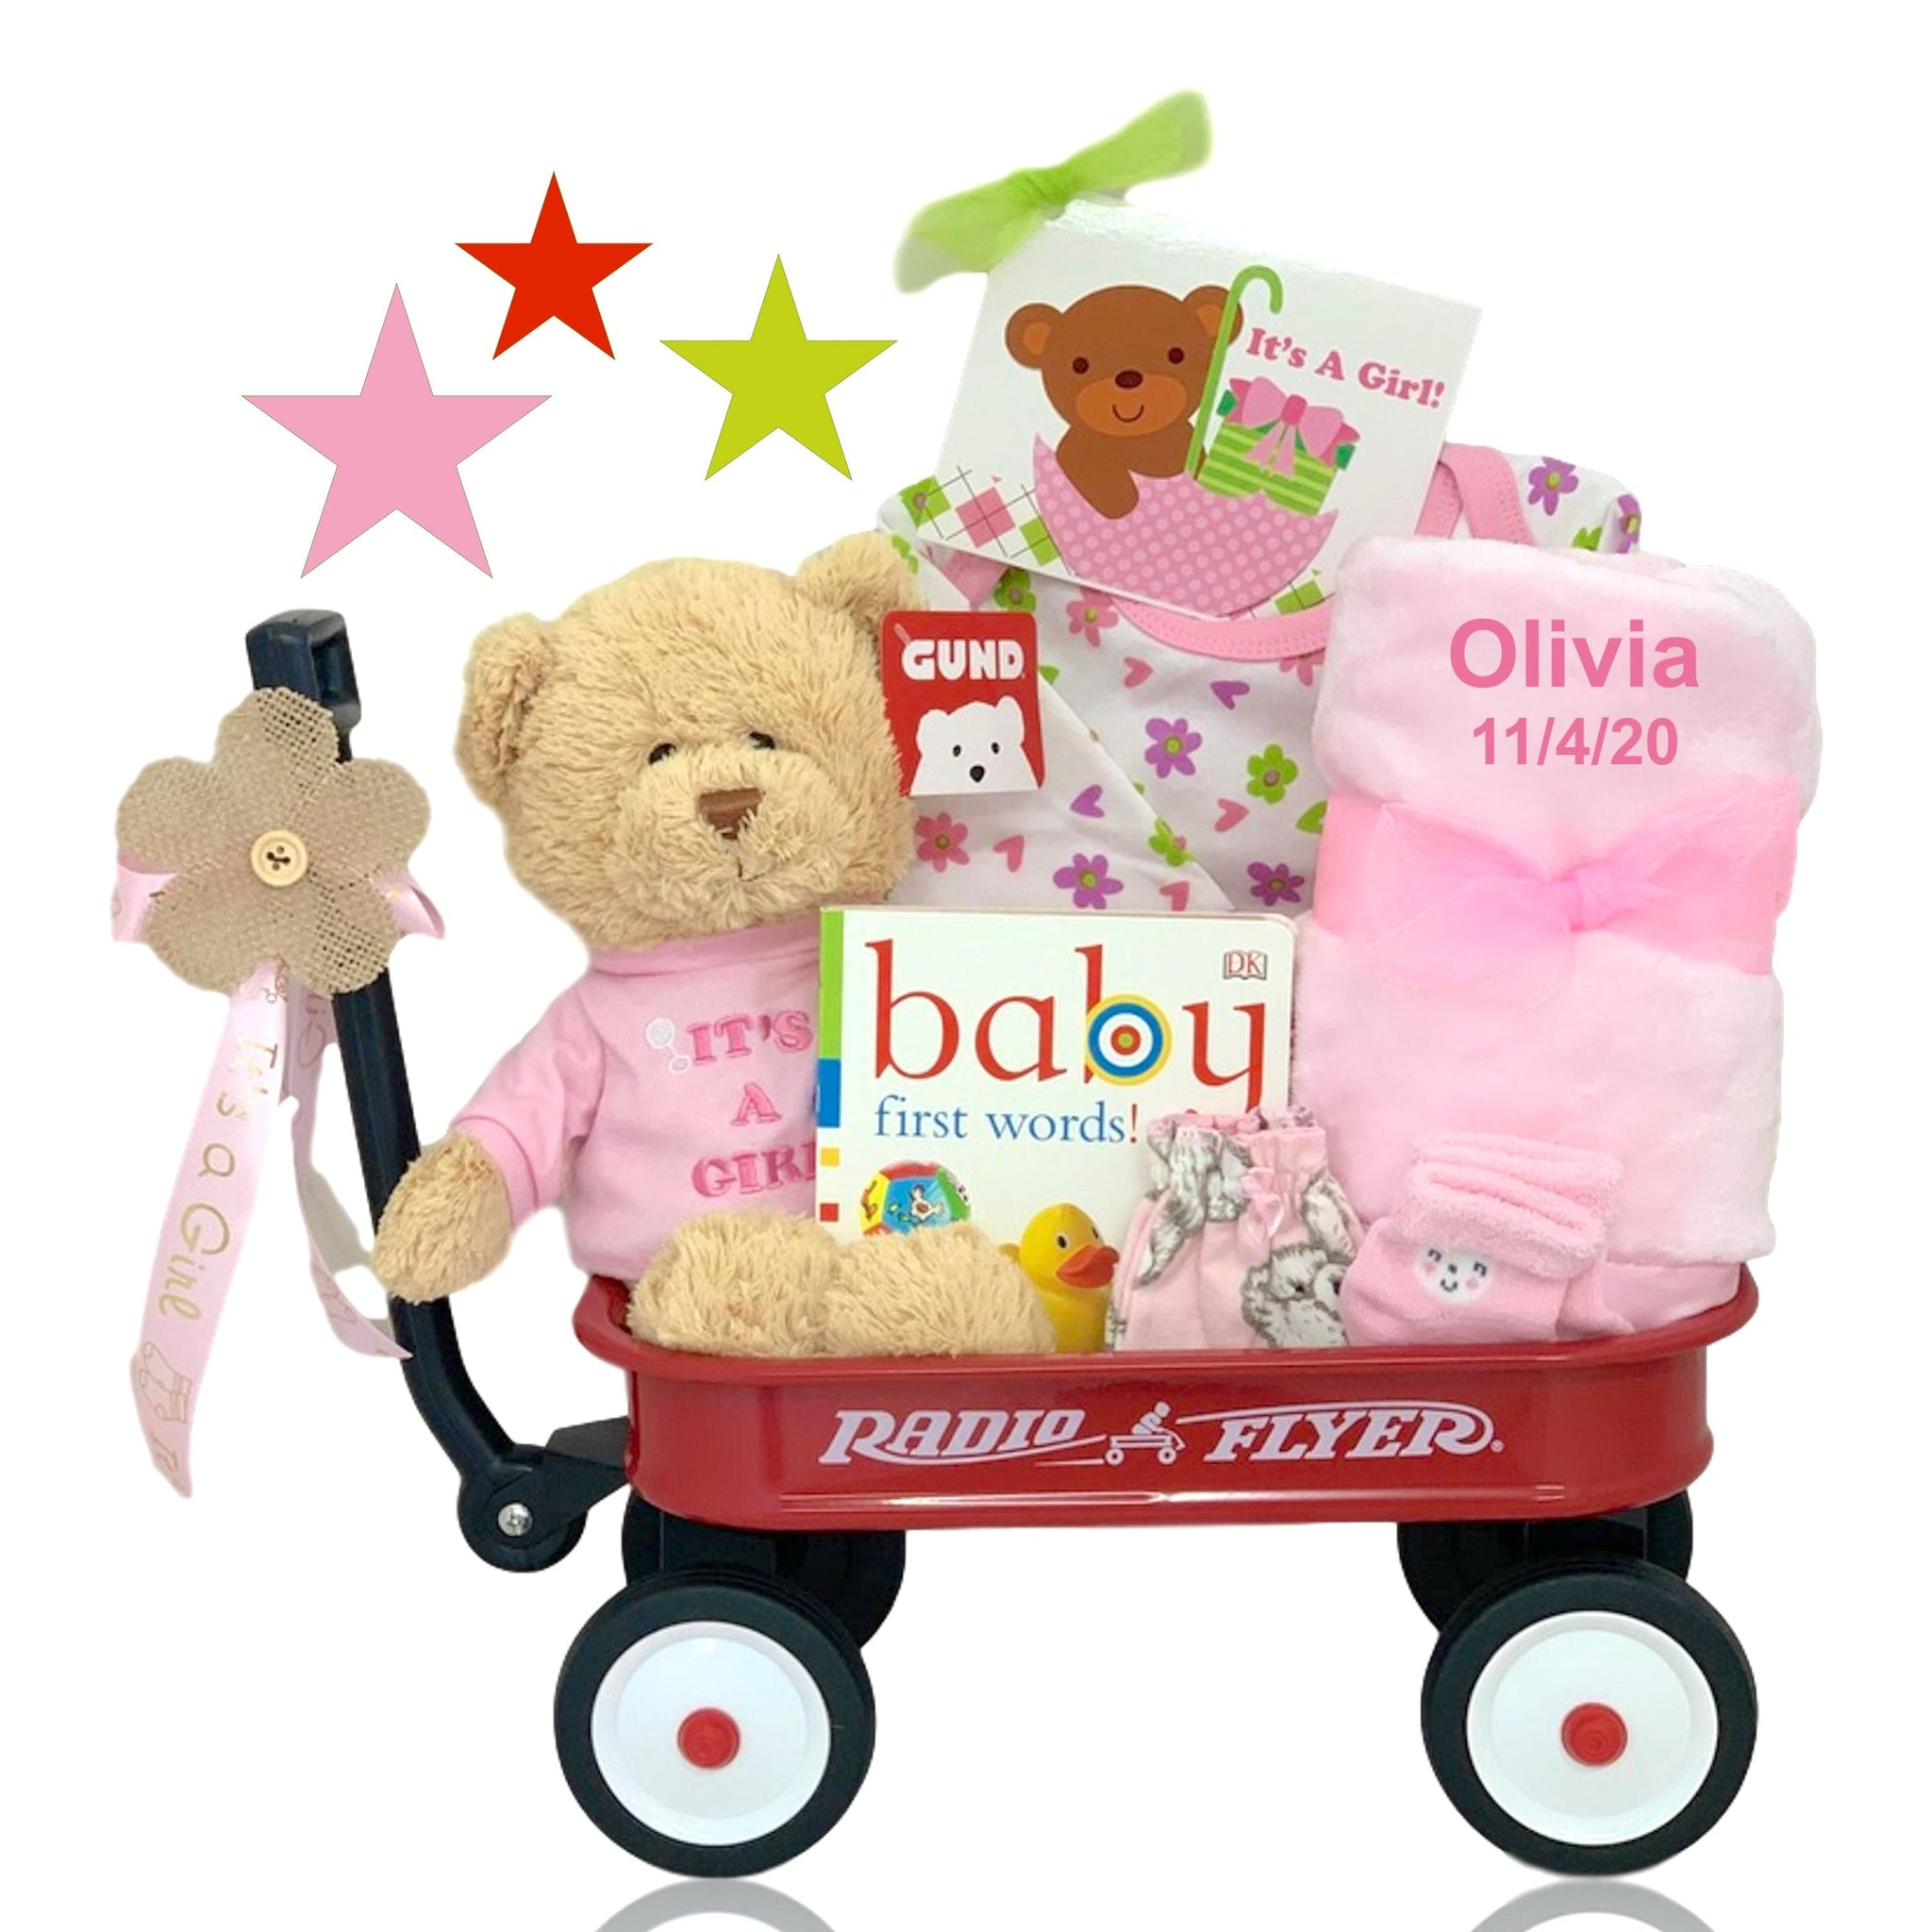 Corner Stork Baby Gifts – Personalized It's A Girl Radio Flyer Wagon Gift Basket